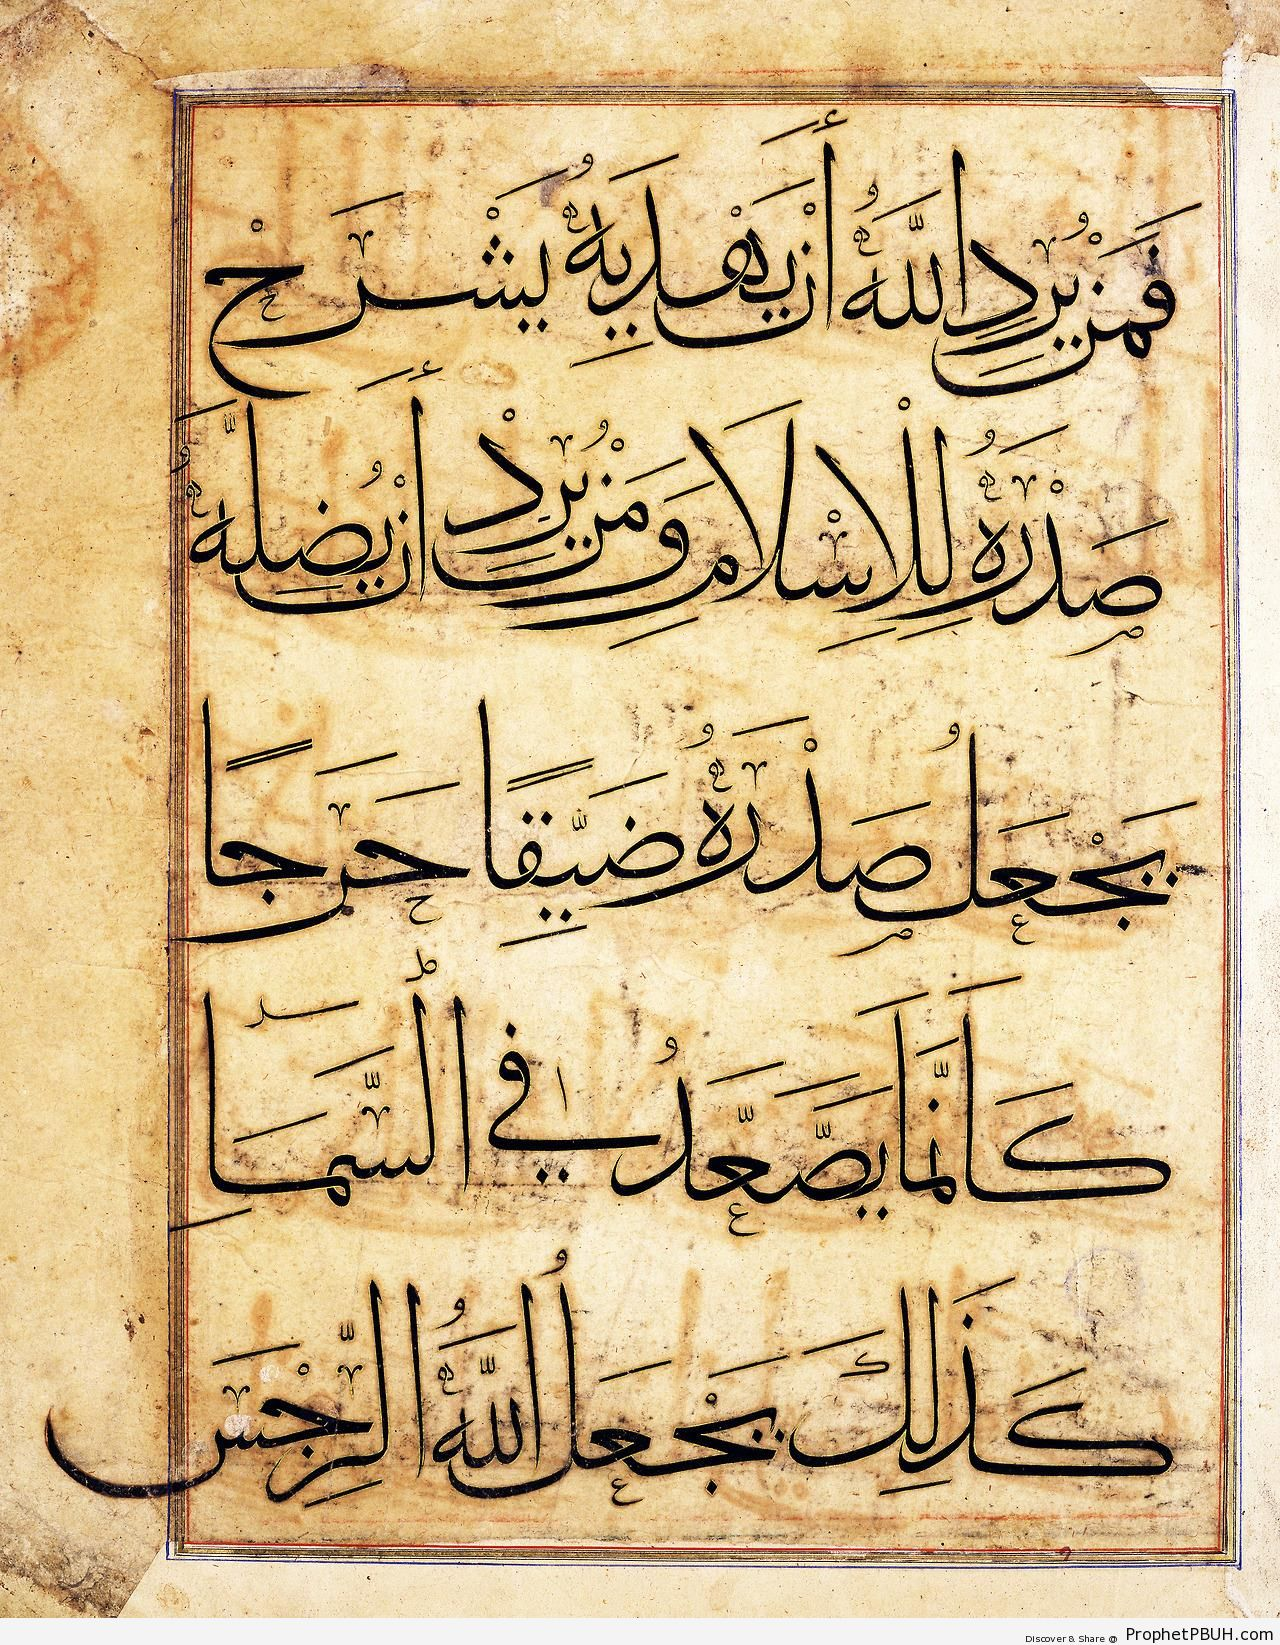 Leaf from 14th-15th Century Quran Manuscript (Iraq or Iran) - Islamic Calligraphy and Typography